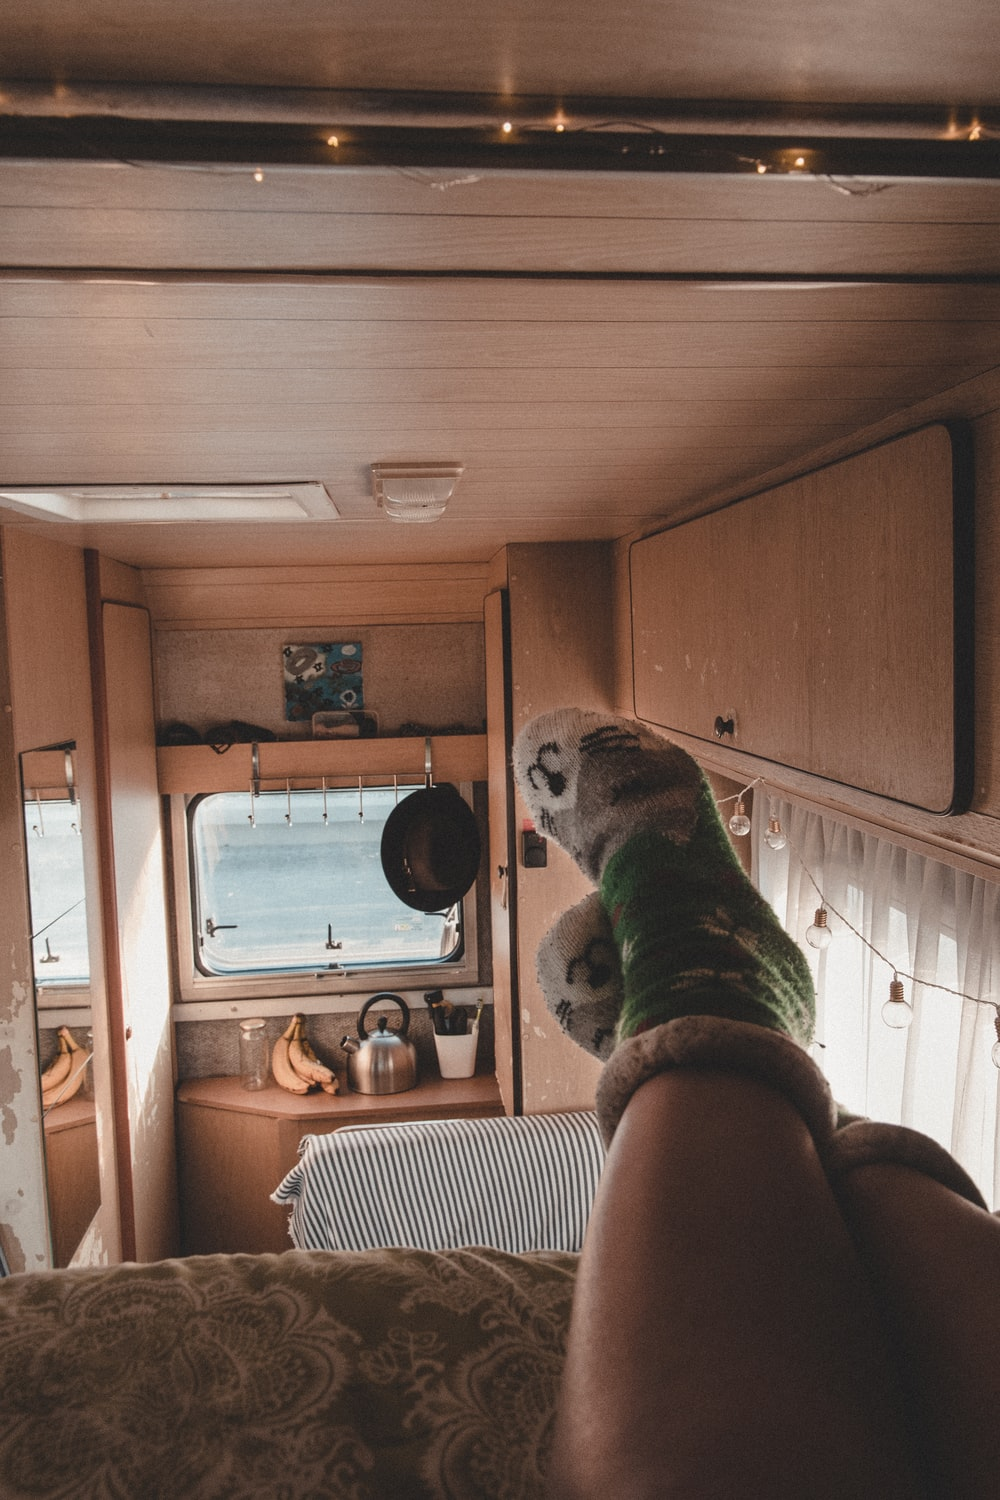 person in green-and-white cat socks in trailer